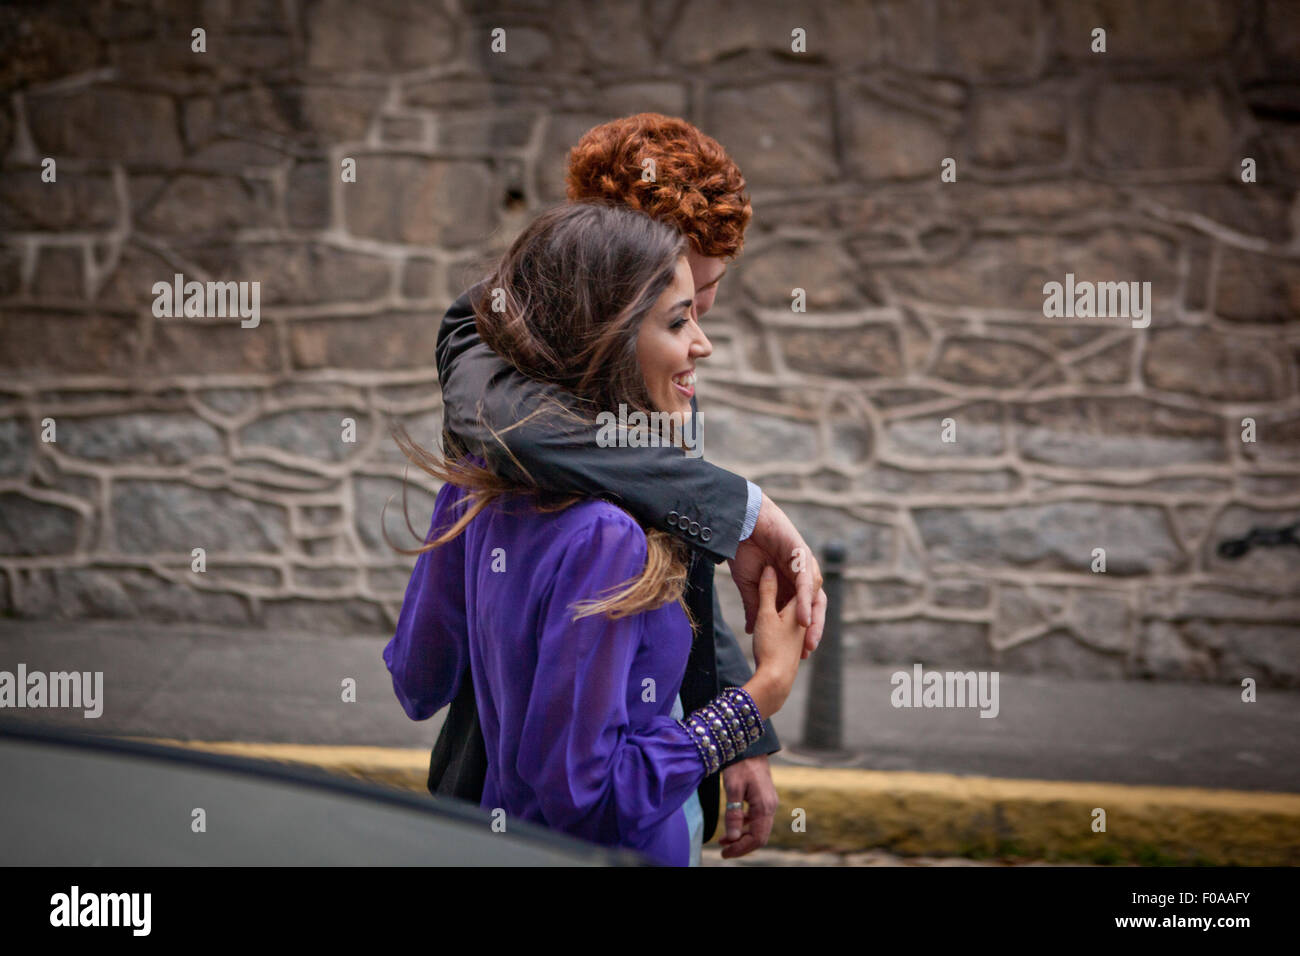 Couple walking along street, arms around each other - Stock Image